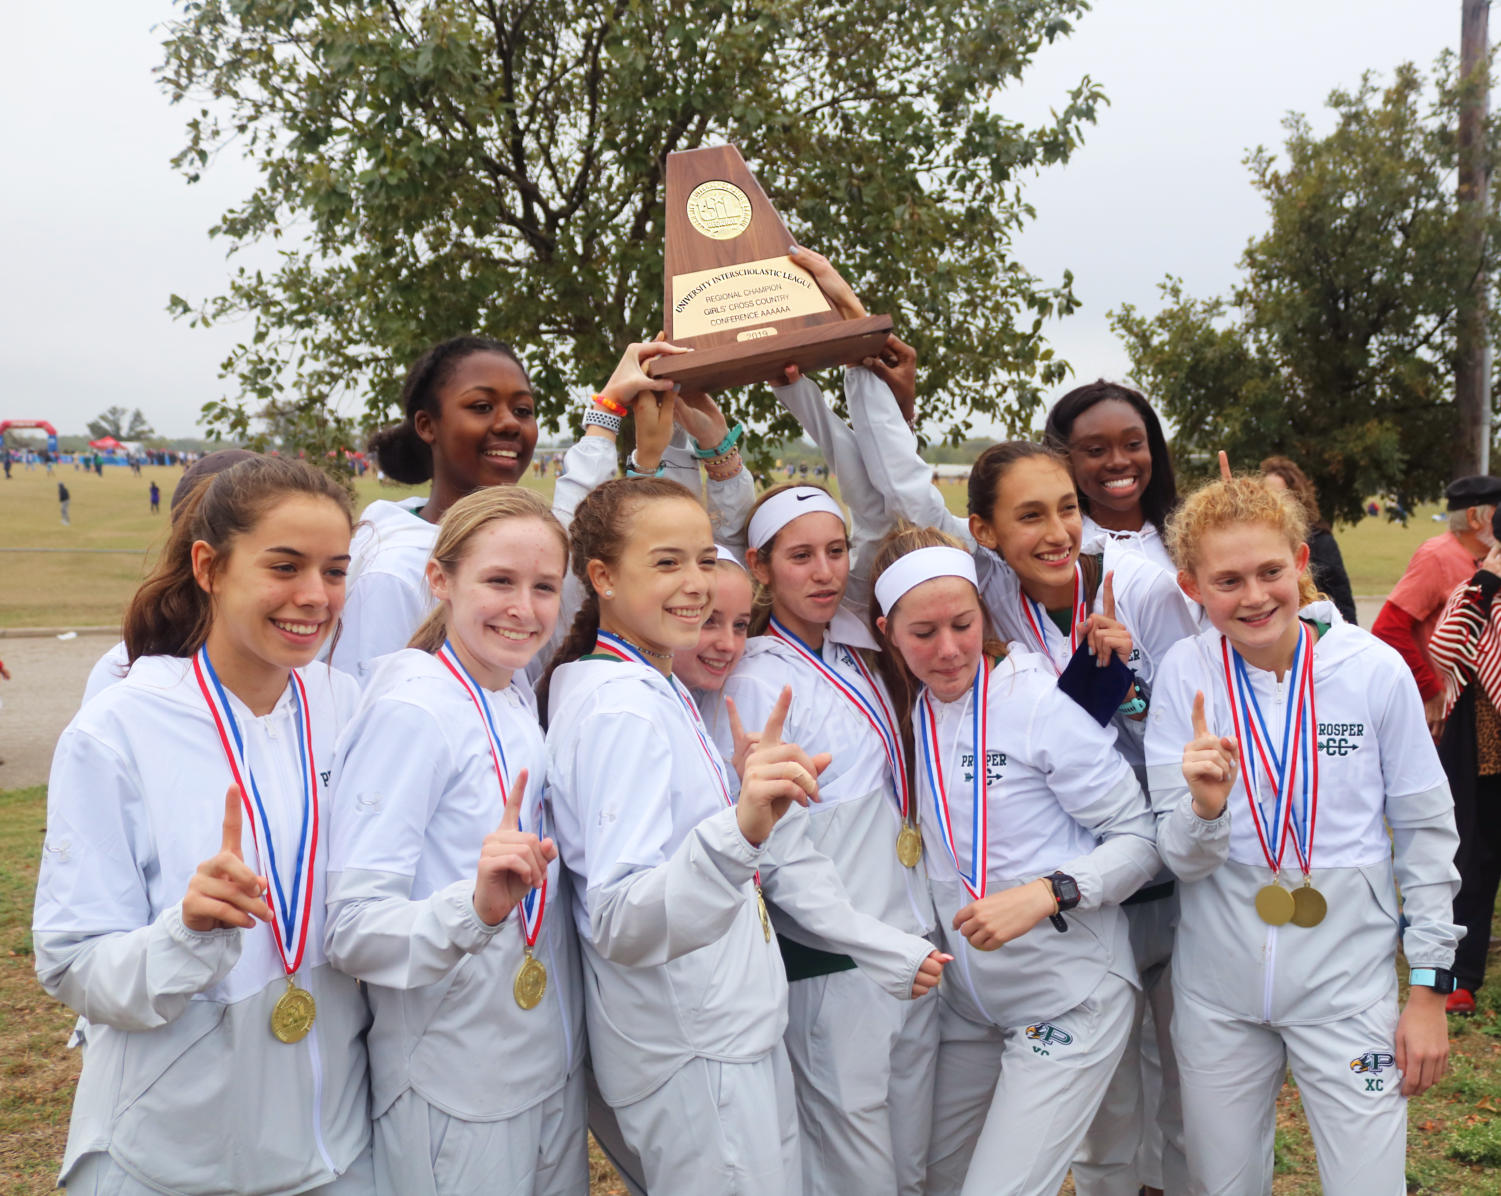 The girls varsity team holds up their first place regional trophy following the meet on Oct. 26.